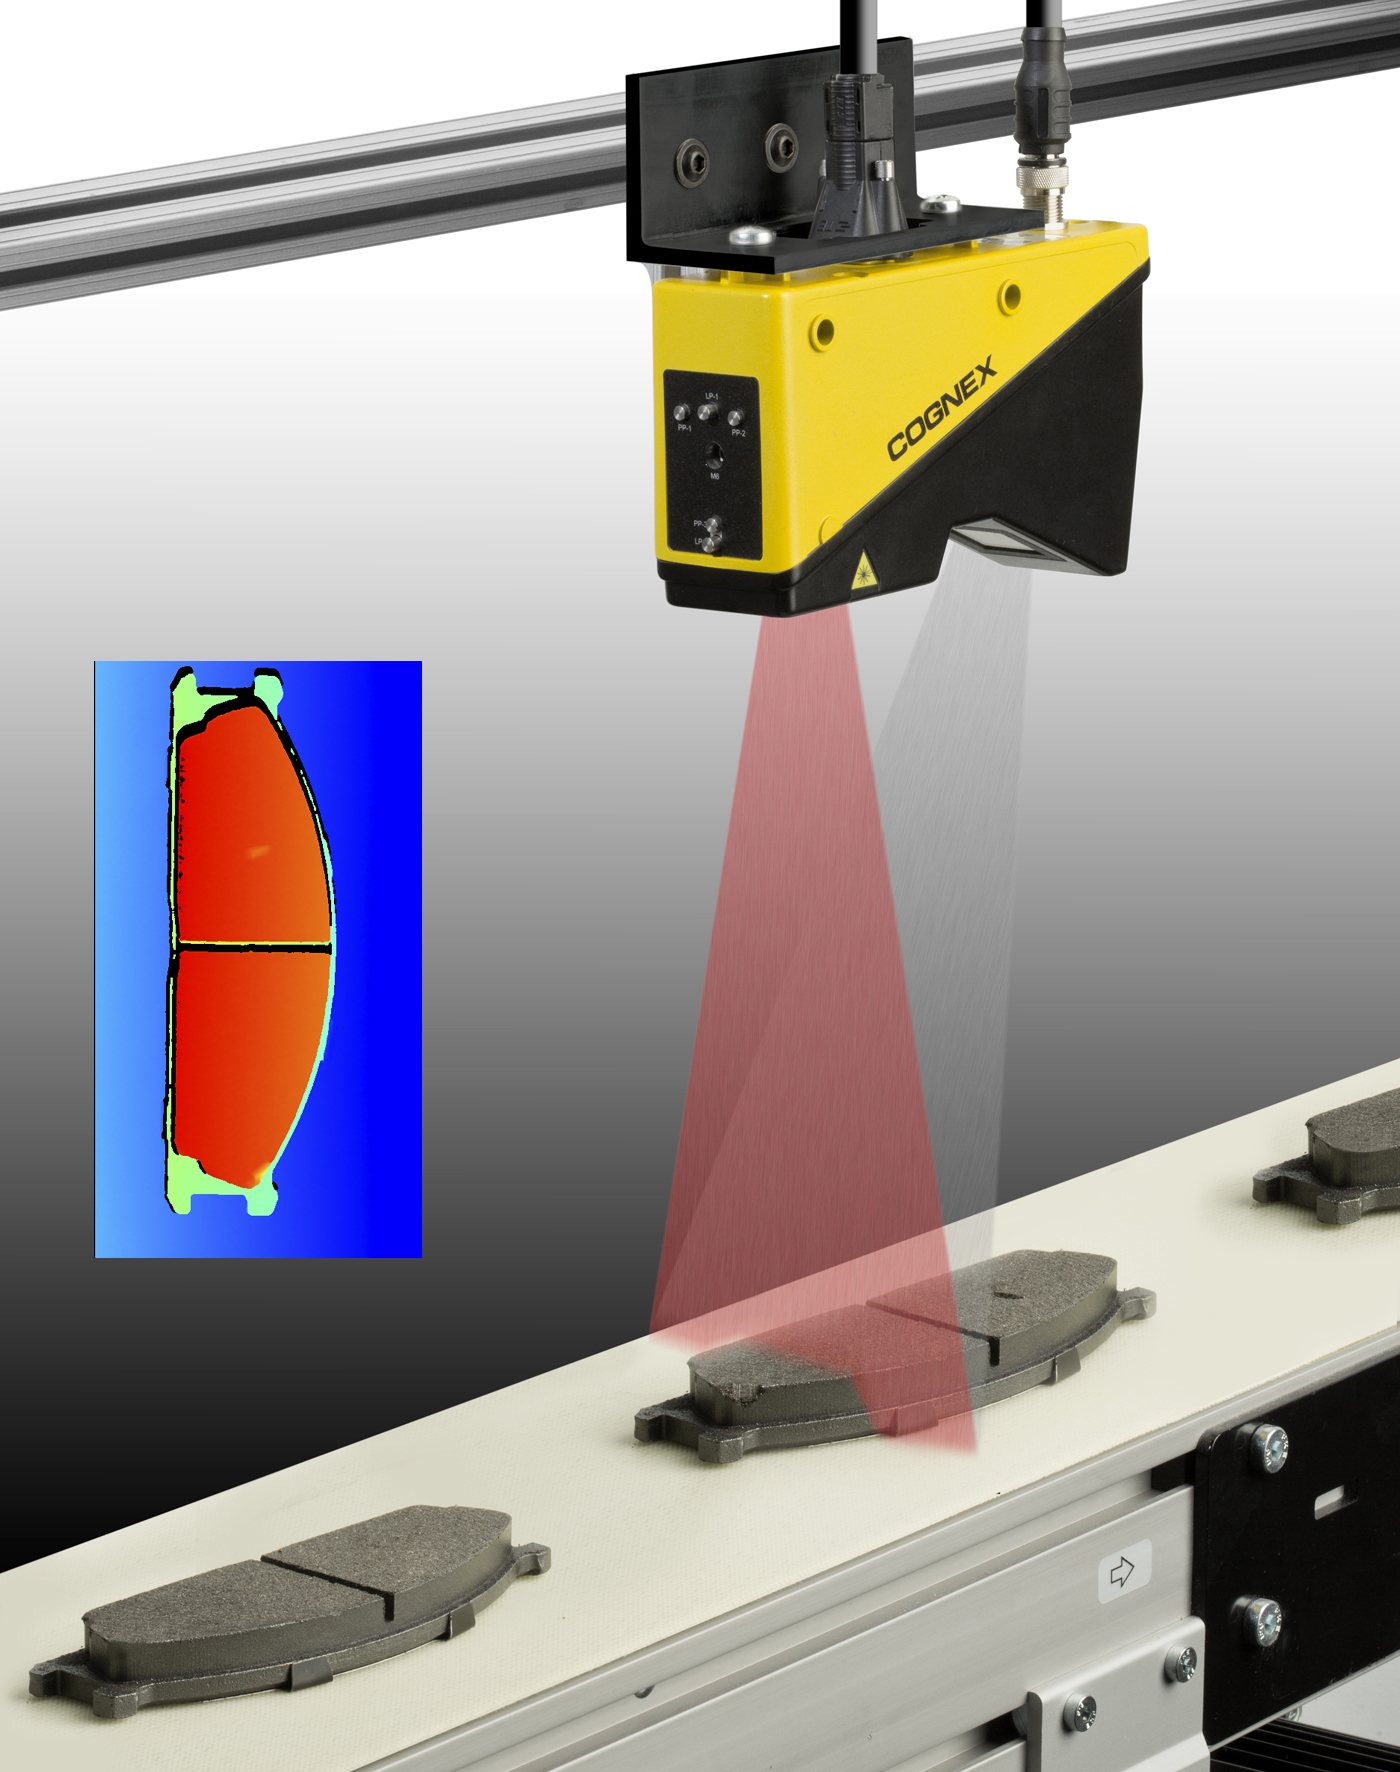 New Calibrated 3d Machine Vision Inspection From Cognex